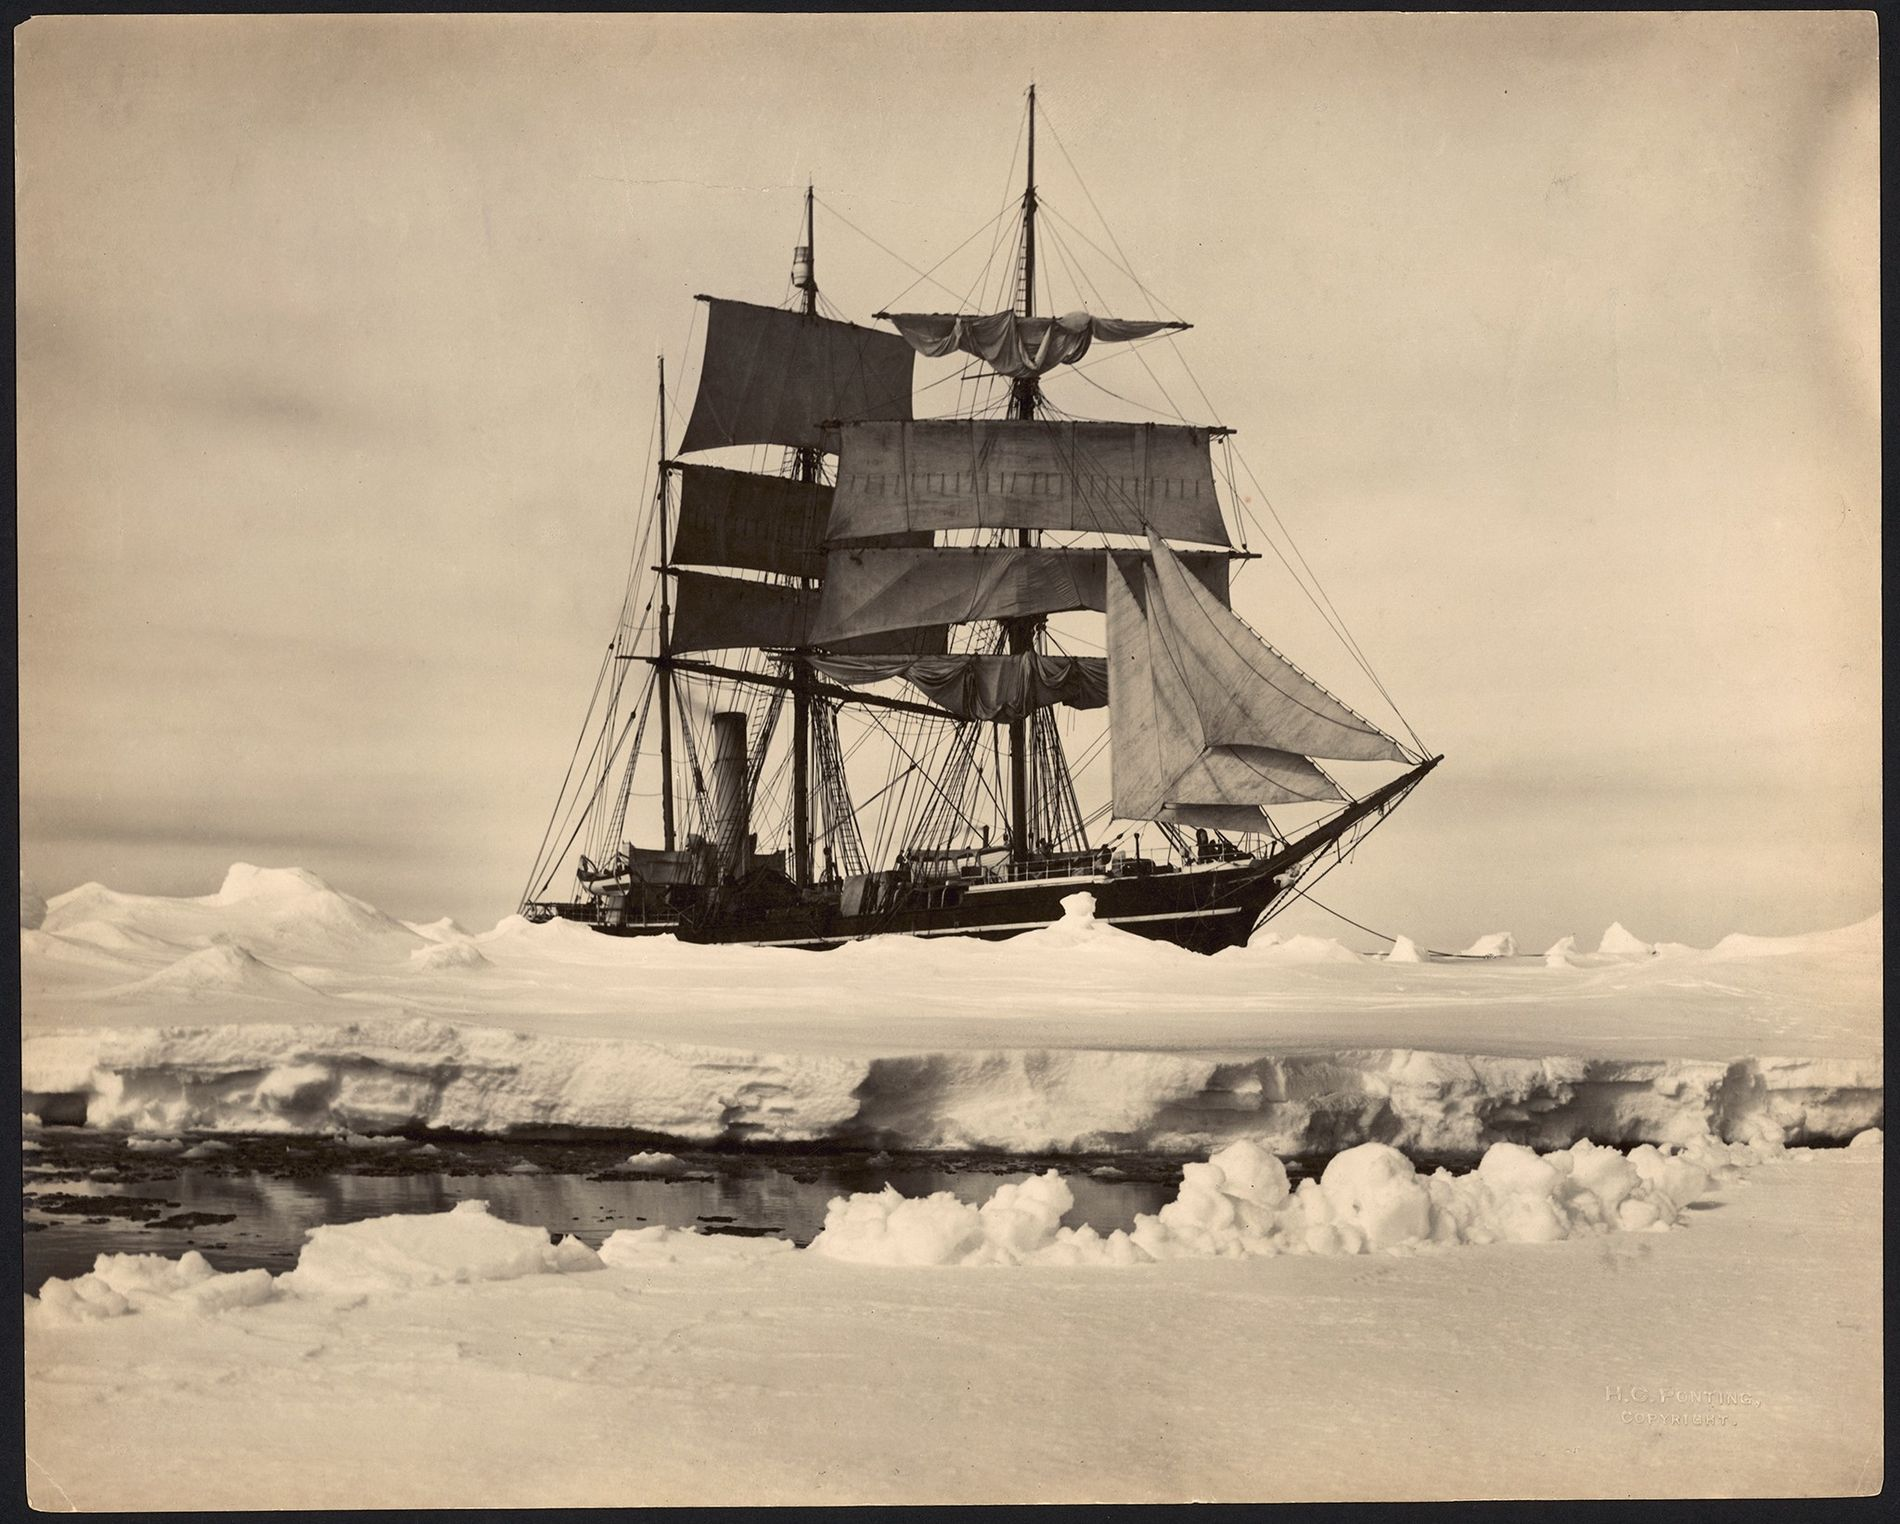 Polar explorer Robert Falcon Scott's ship Terra Nova is moored amid pack ice in Antarctica in the early 1900s.